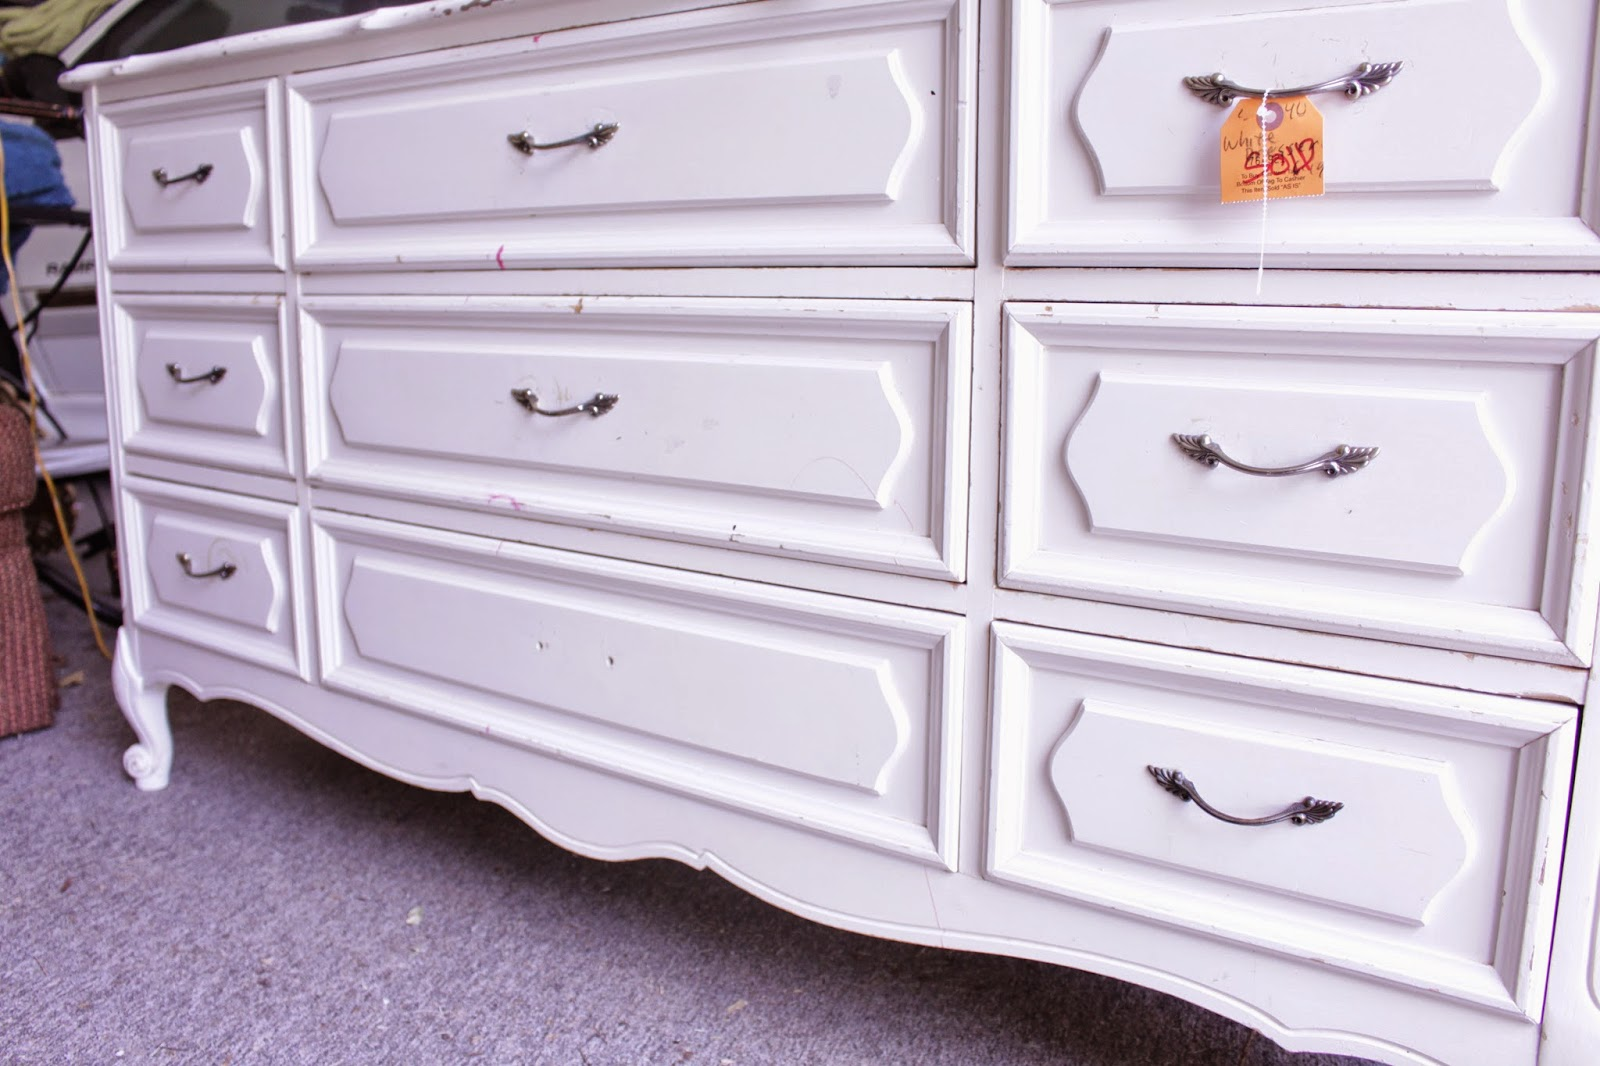 cool ideas thrift ikea hack makeover store for dresser makeovers diy rast furniture painted refurbished and